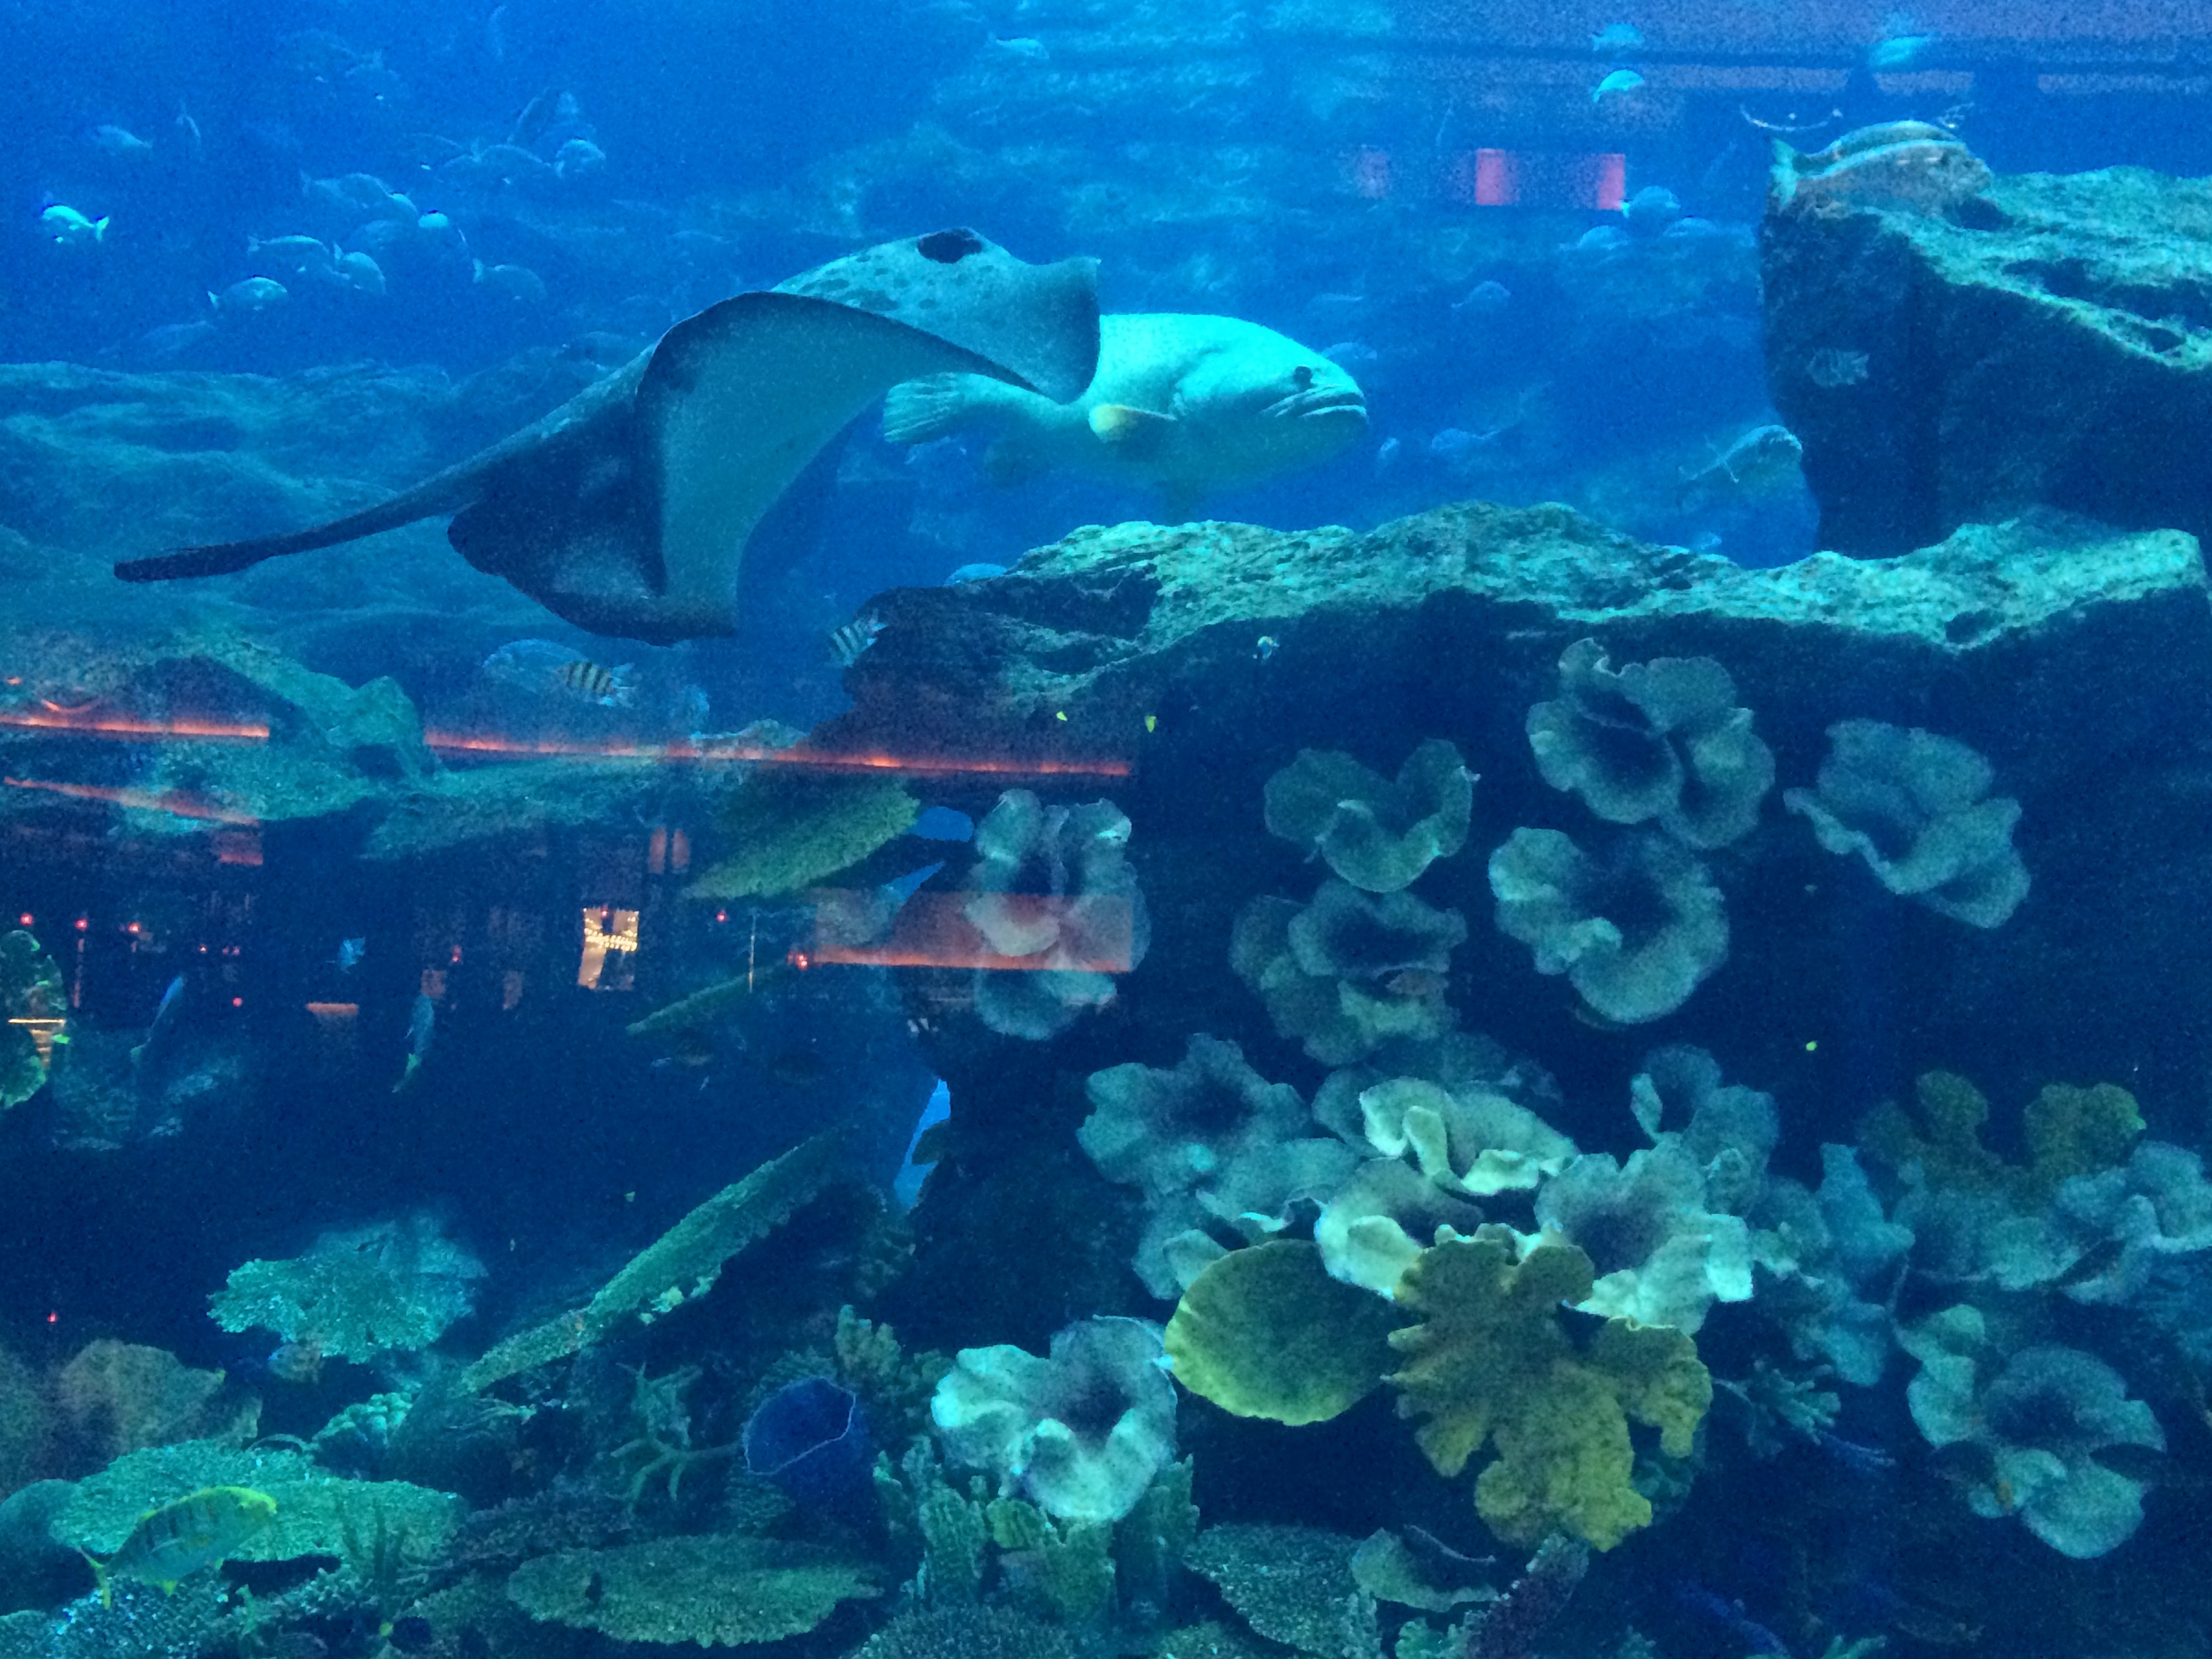 Got sidetracked from Dinner by the Aquarium at the Dubai Mall